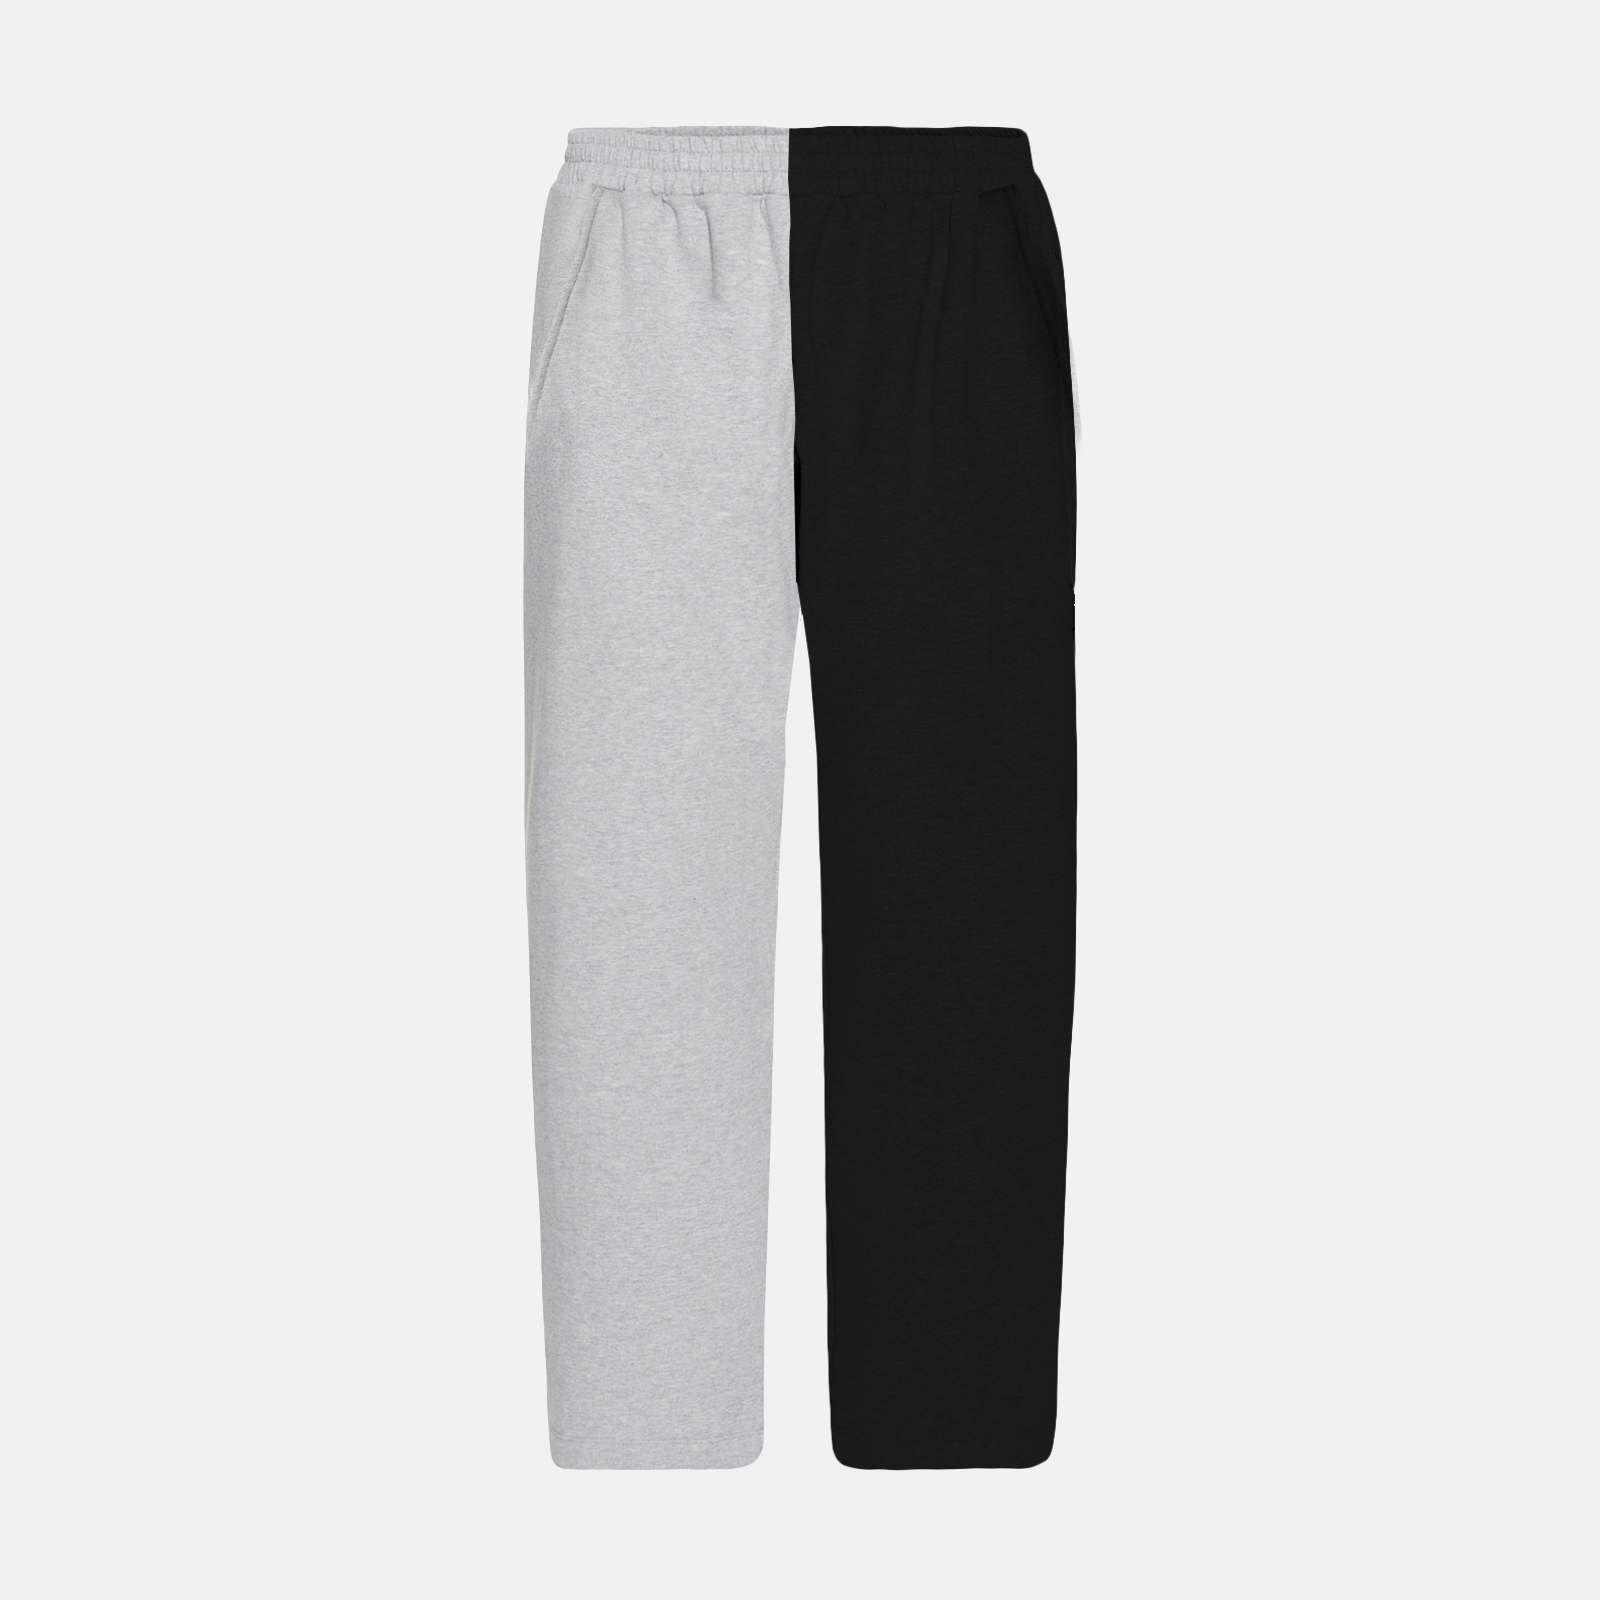 Safety Color block sport pants